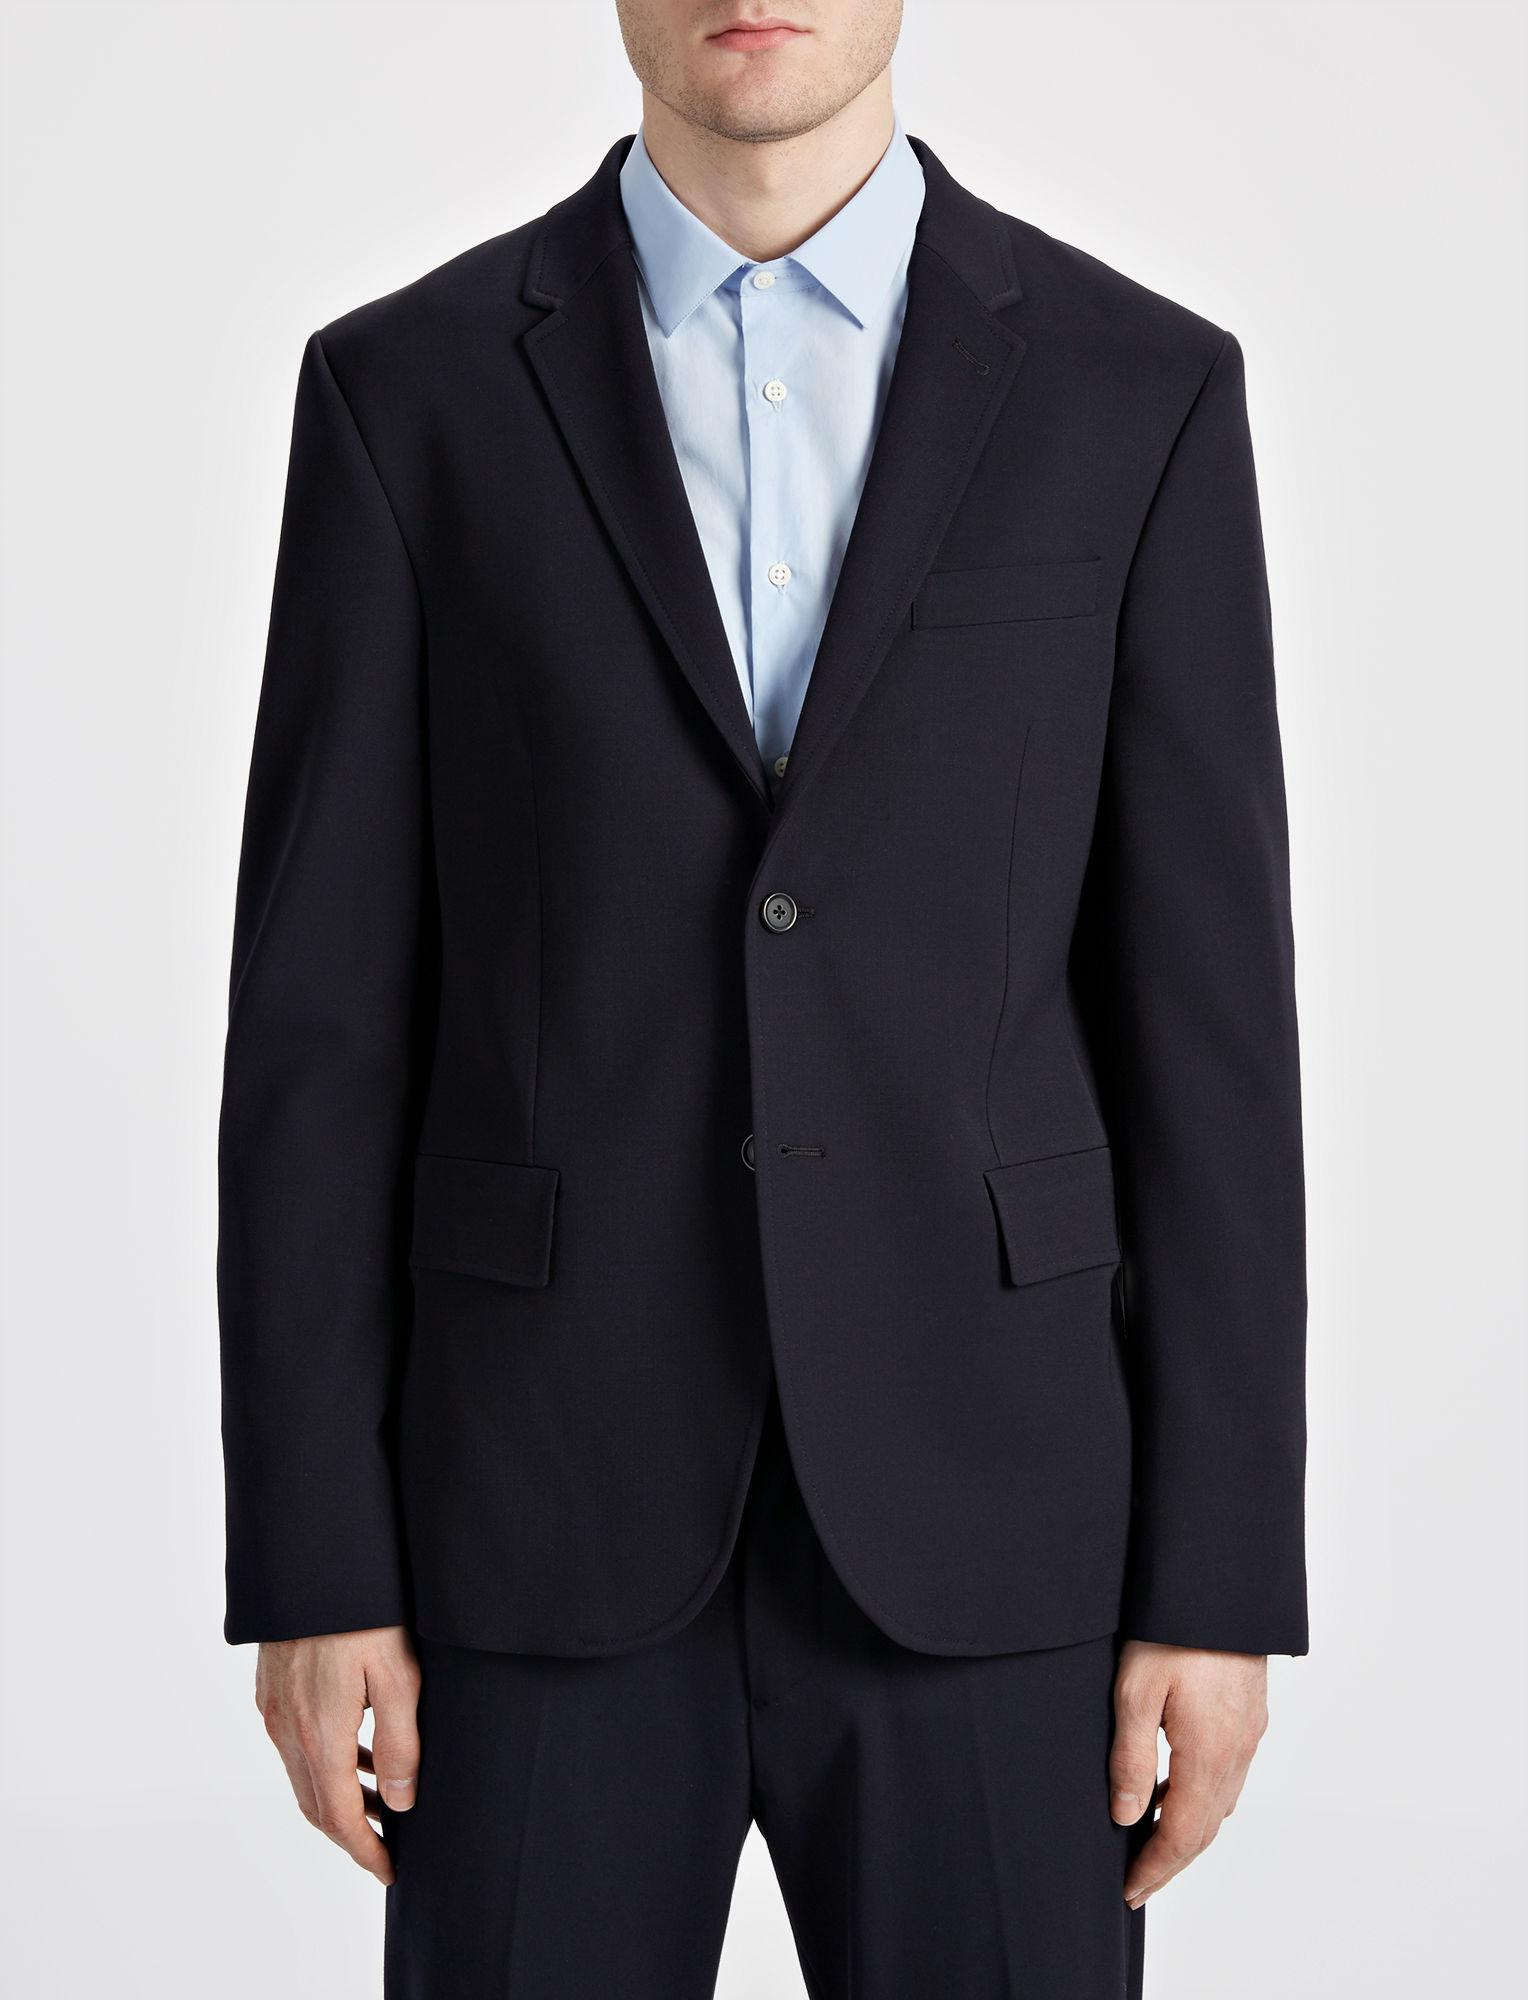 JOSEPH Techno Wool Stretch Halifax Suit in Navy (Blue) for Men